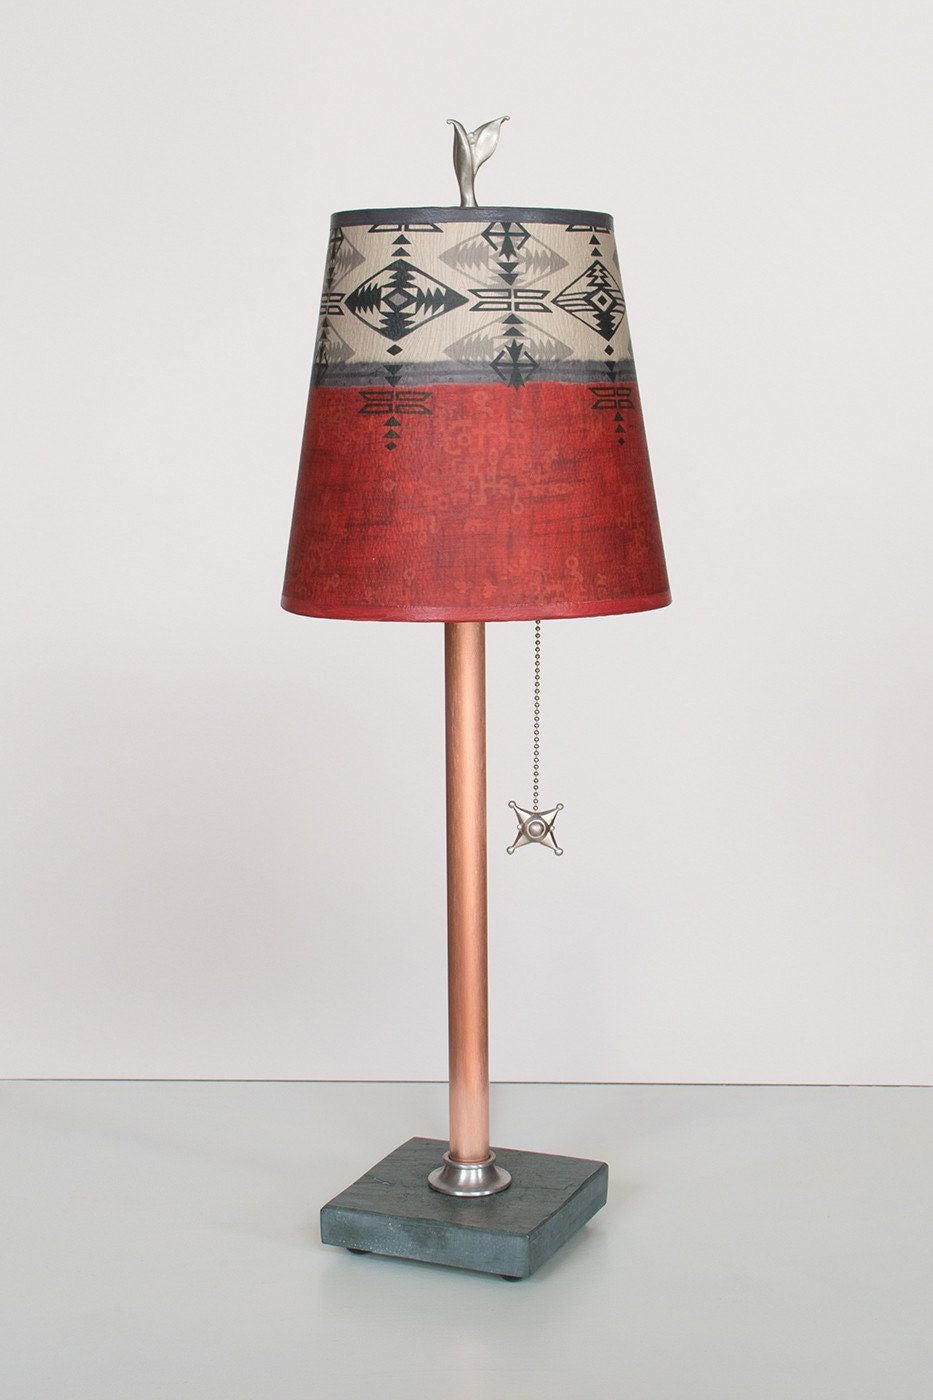 Copper Table Lamp on Vermont Slate Base with Small Drum Shade in Mesa Lit